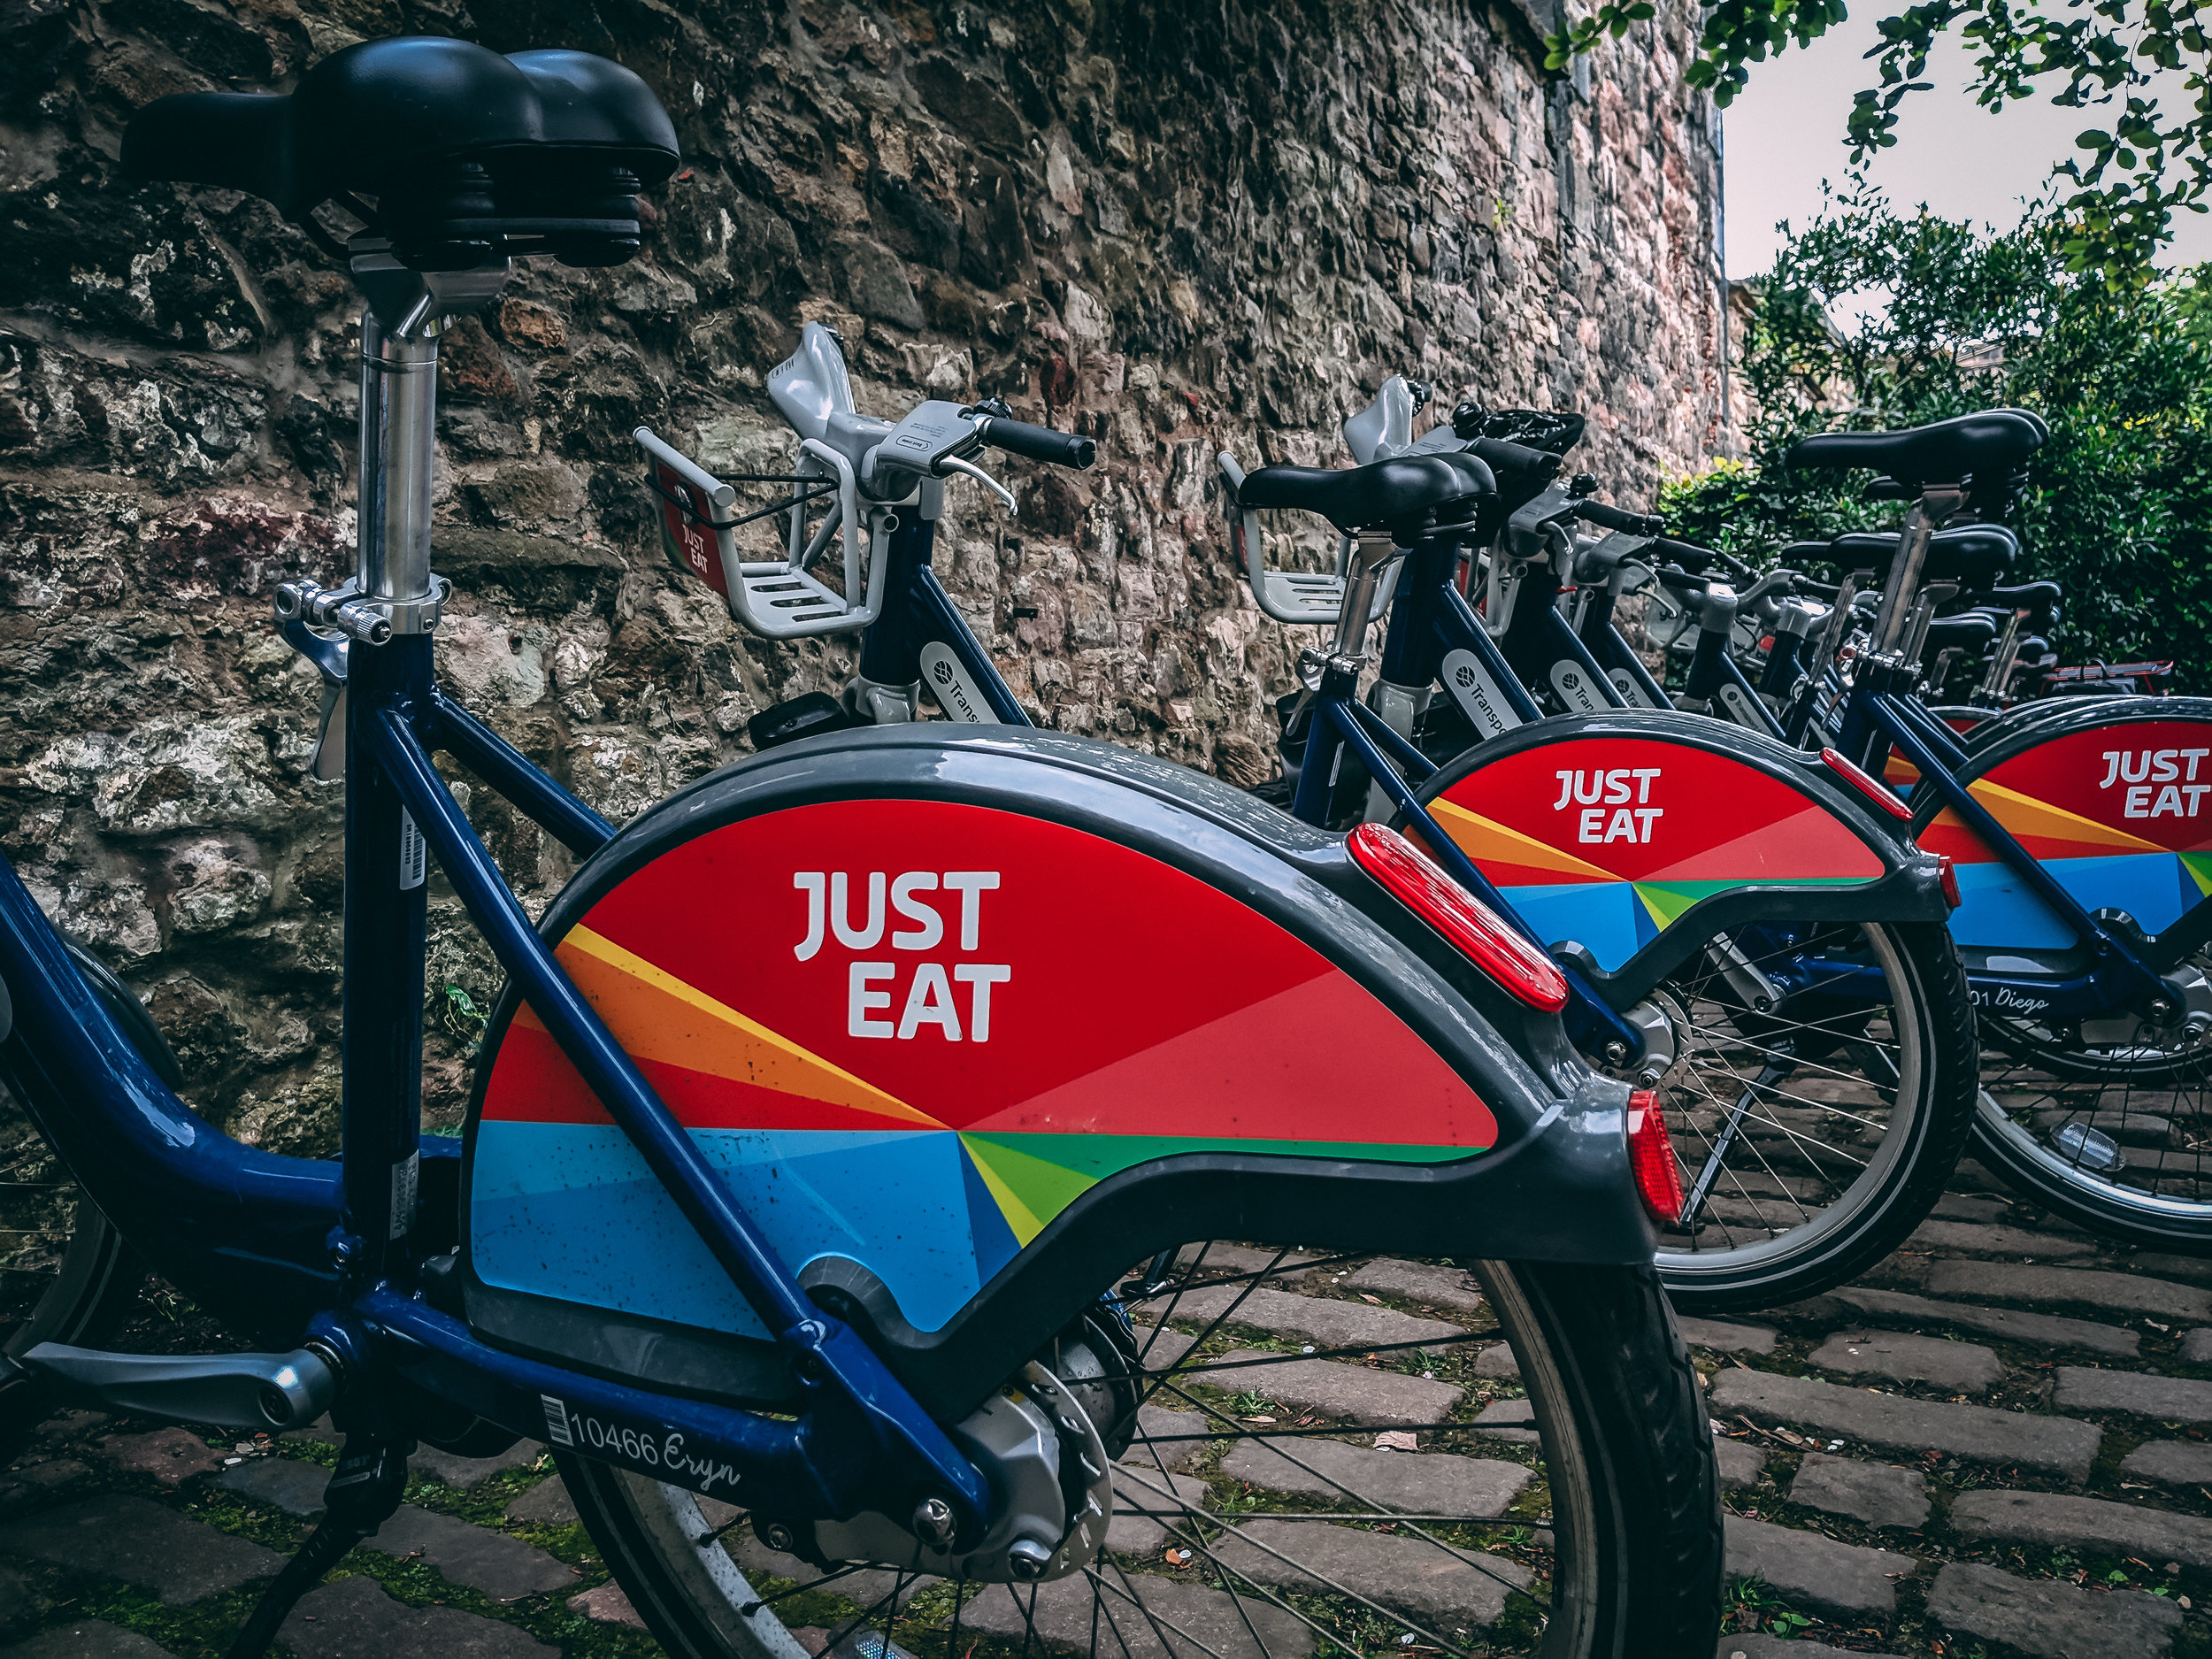 Just Eat Bikes, parked up.